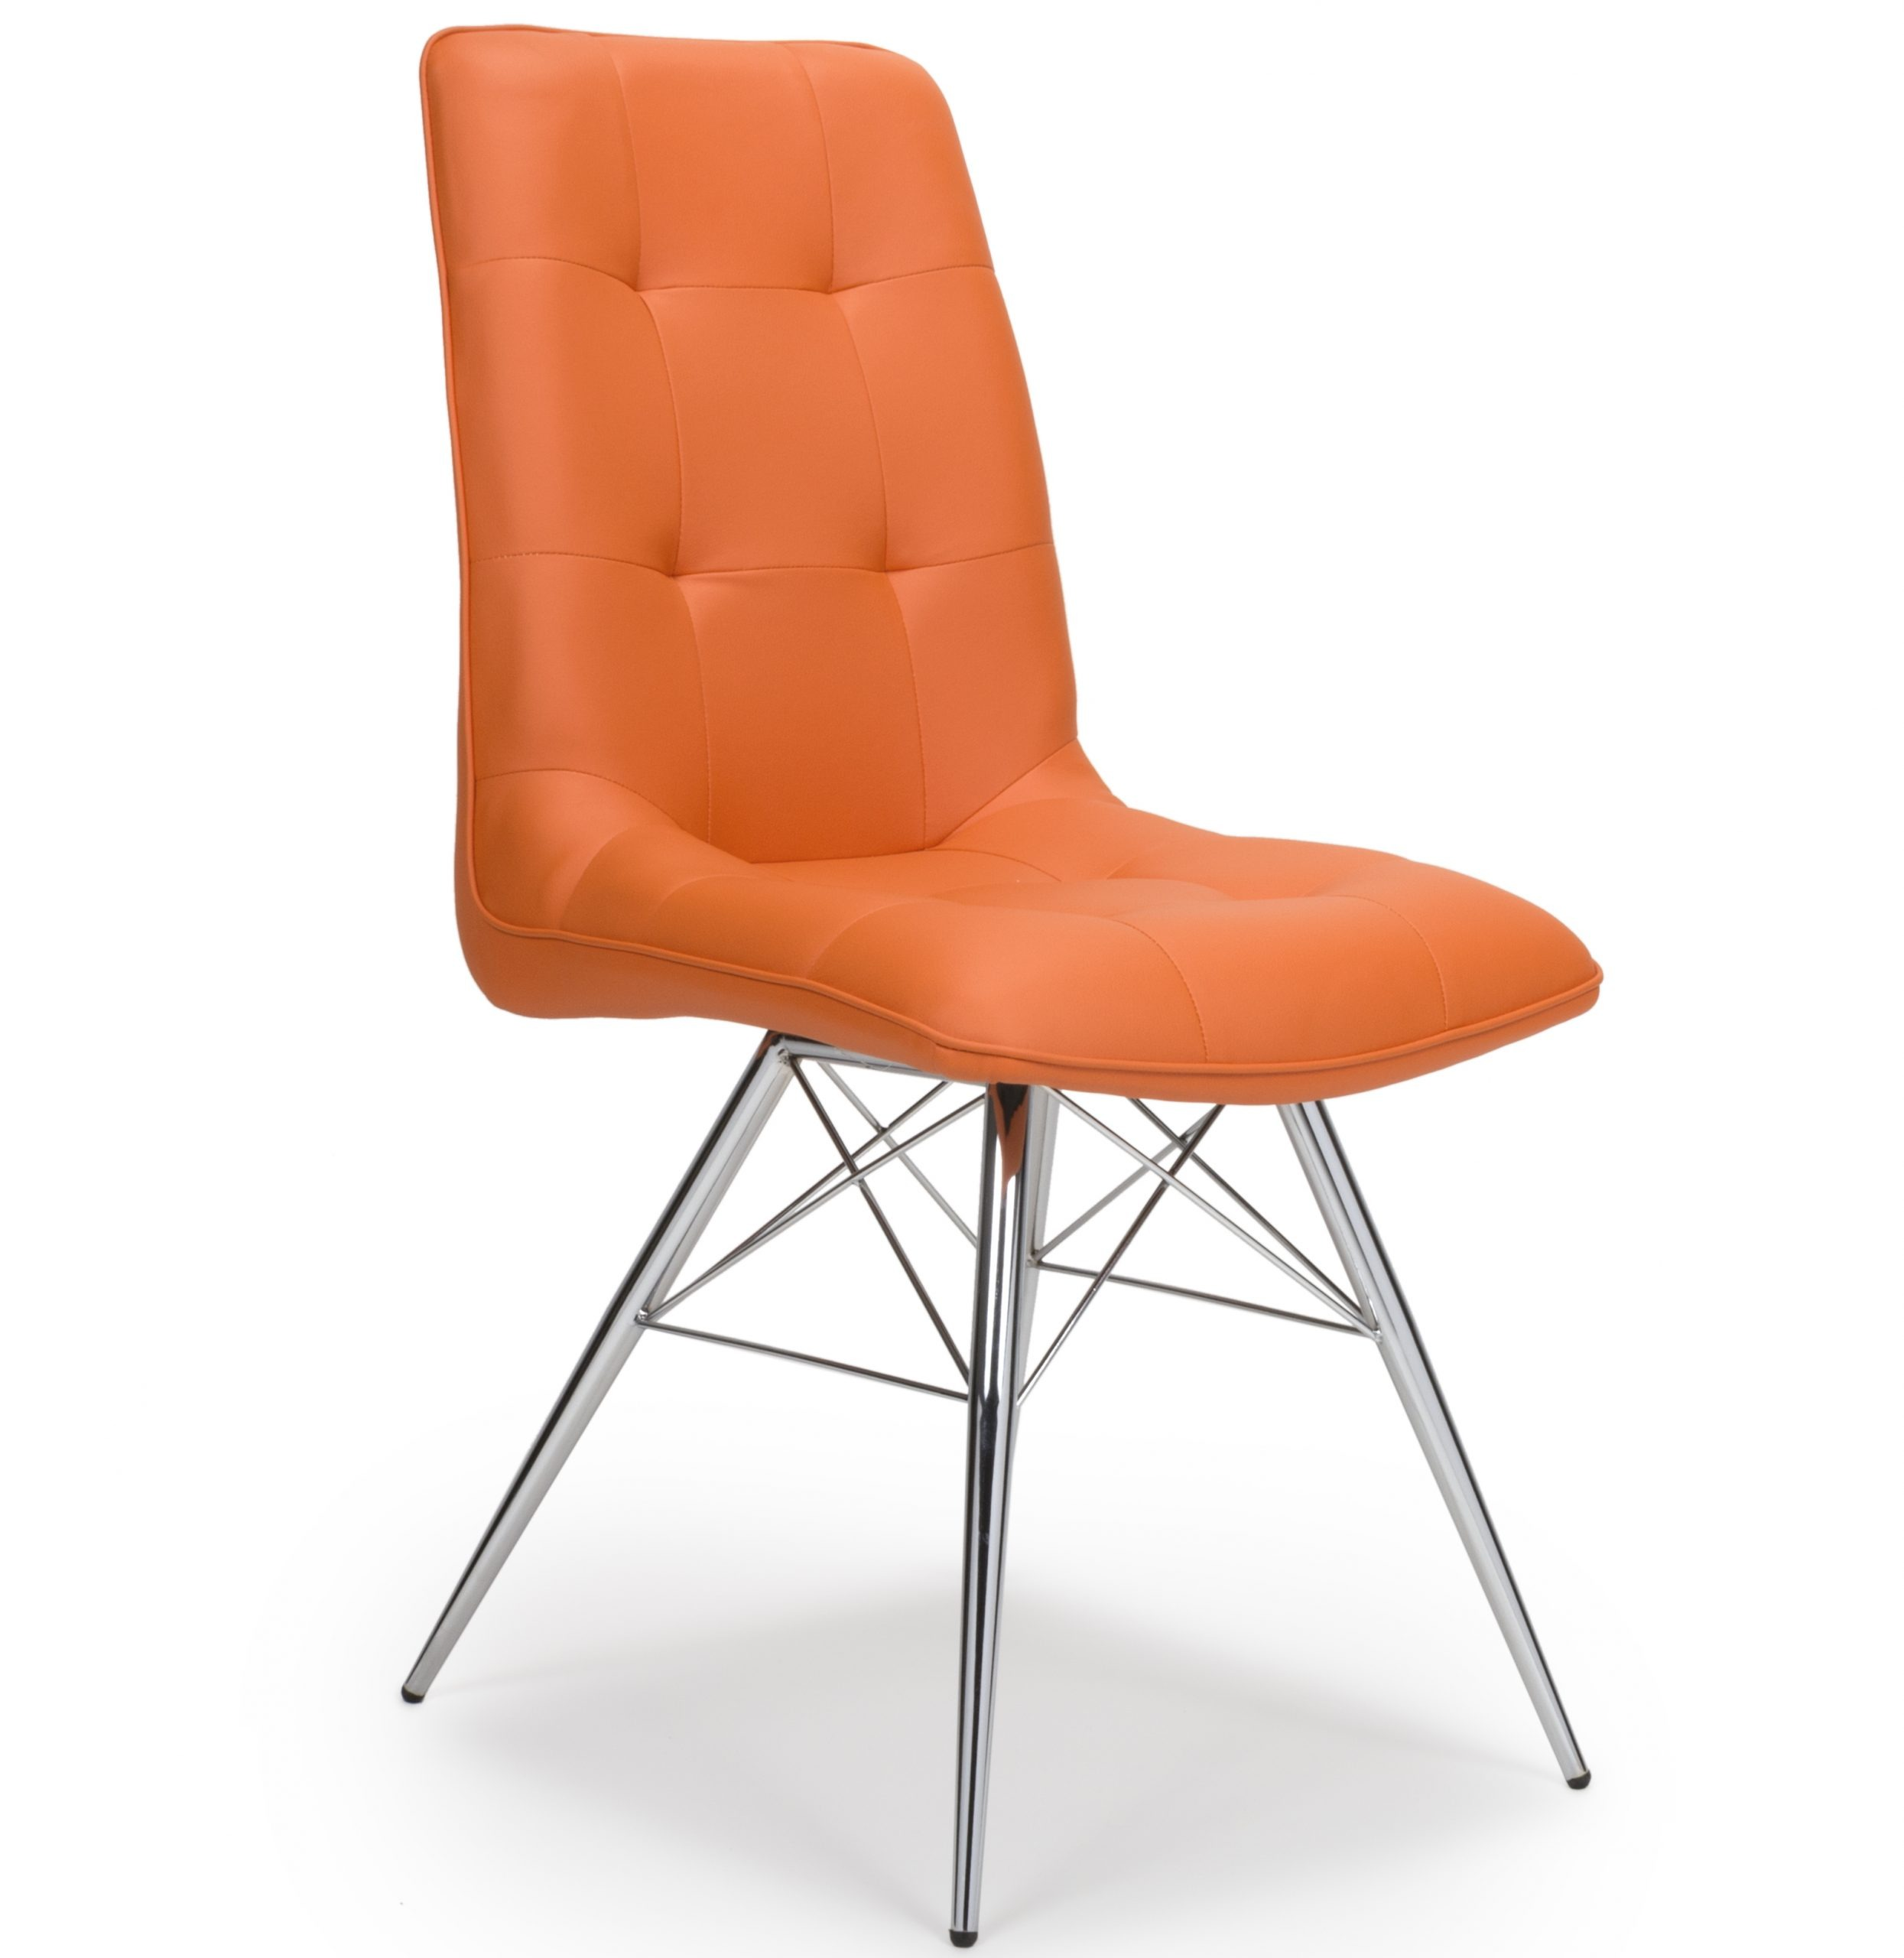 Chair Eames Tampa Orange Leather Eames Style Modern Dining Chair